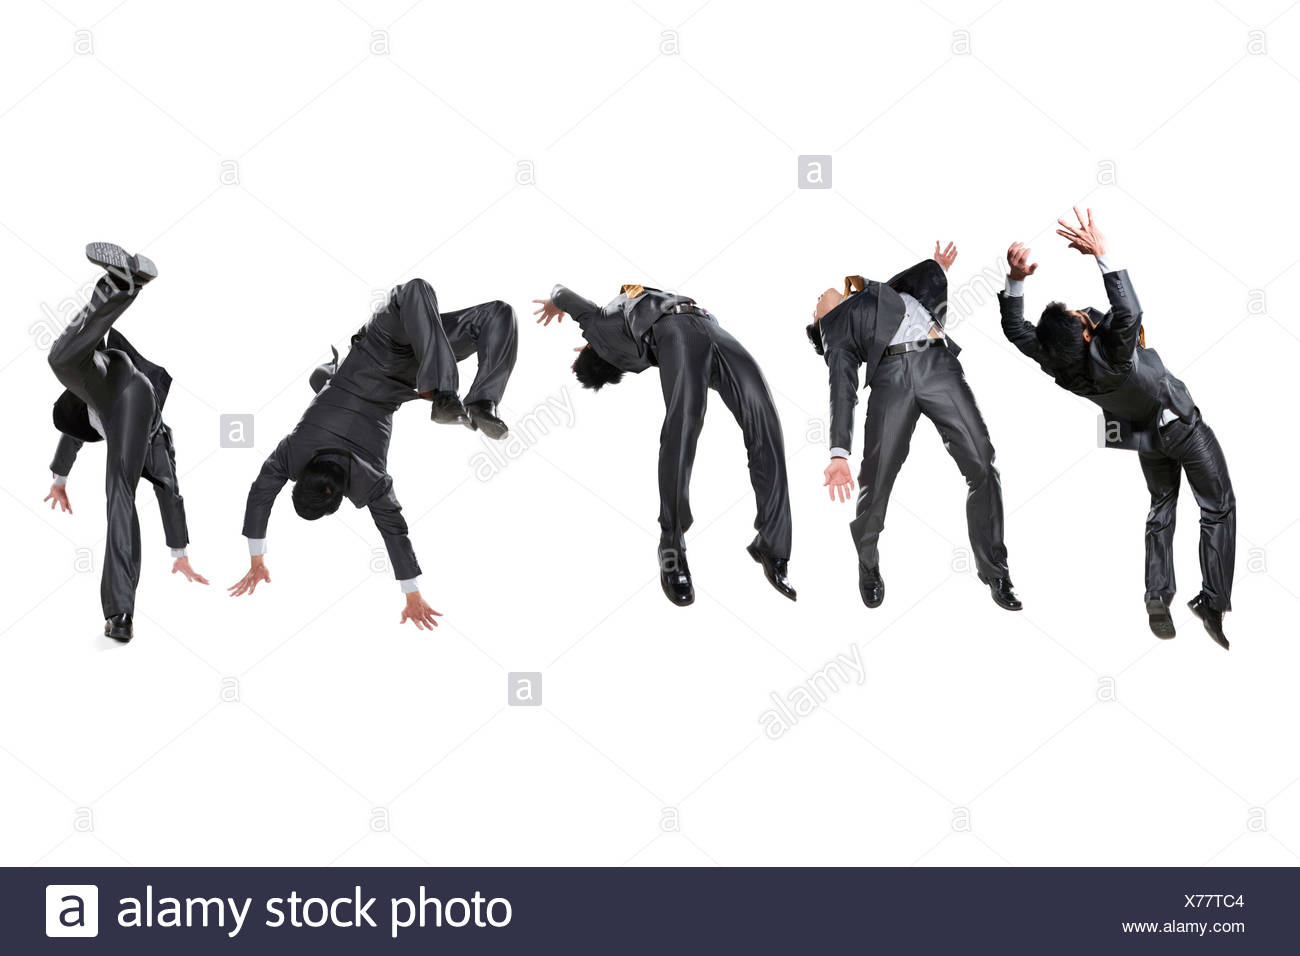 Five businessmen flipping in the air - Stock Image